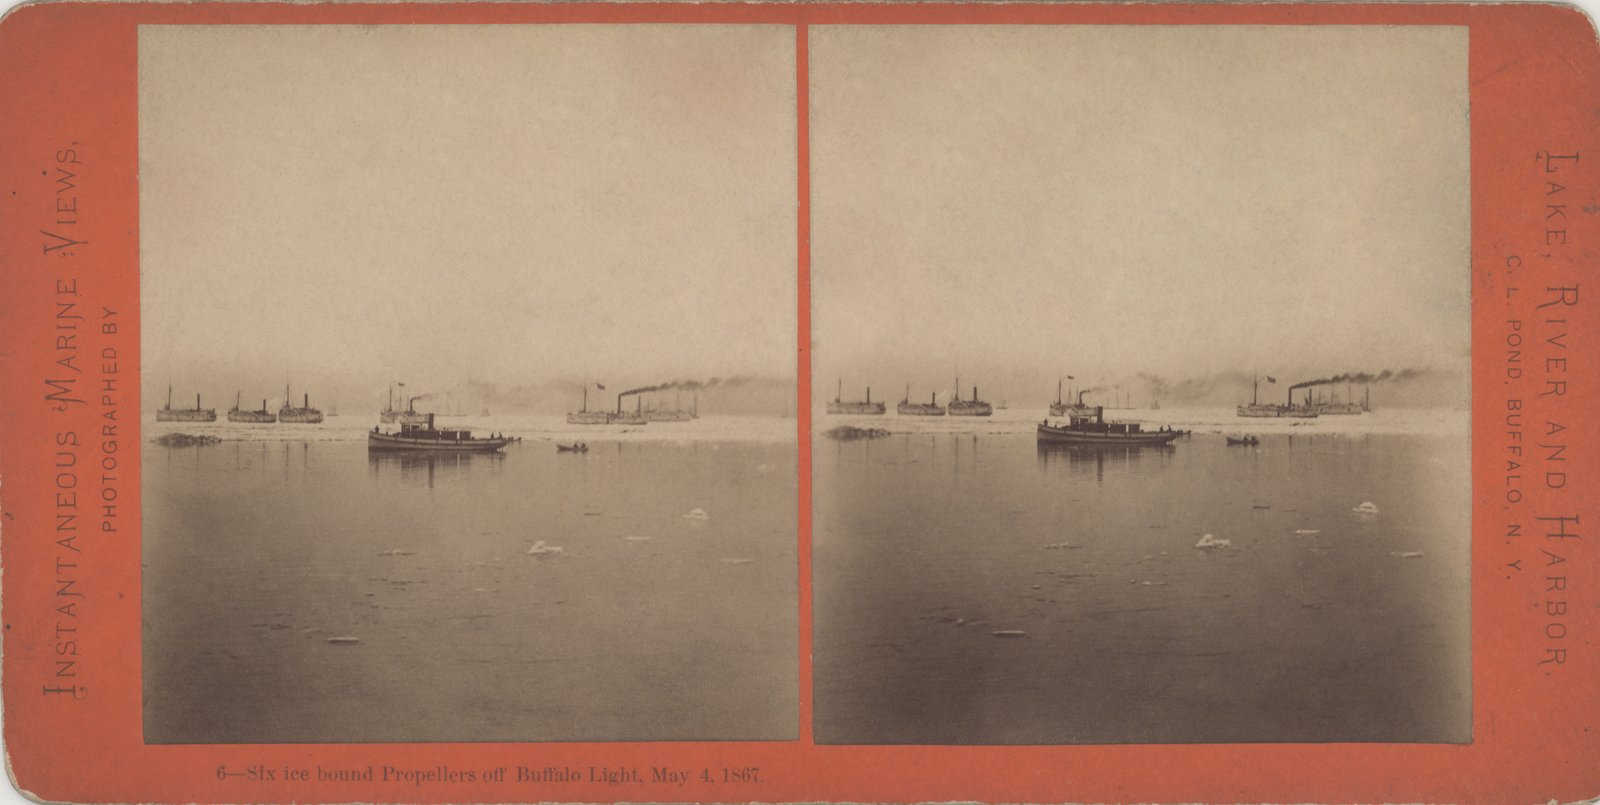 Six ice bound Propellers off Buffalo Light, May 4, 1867.